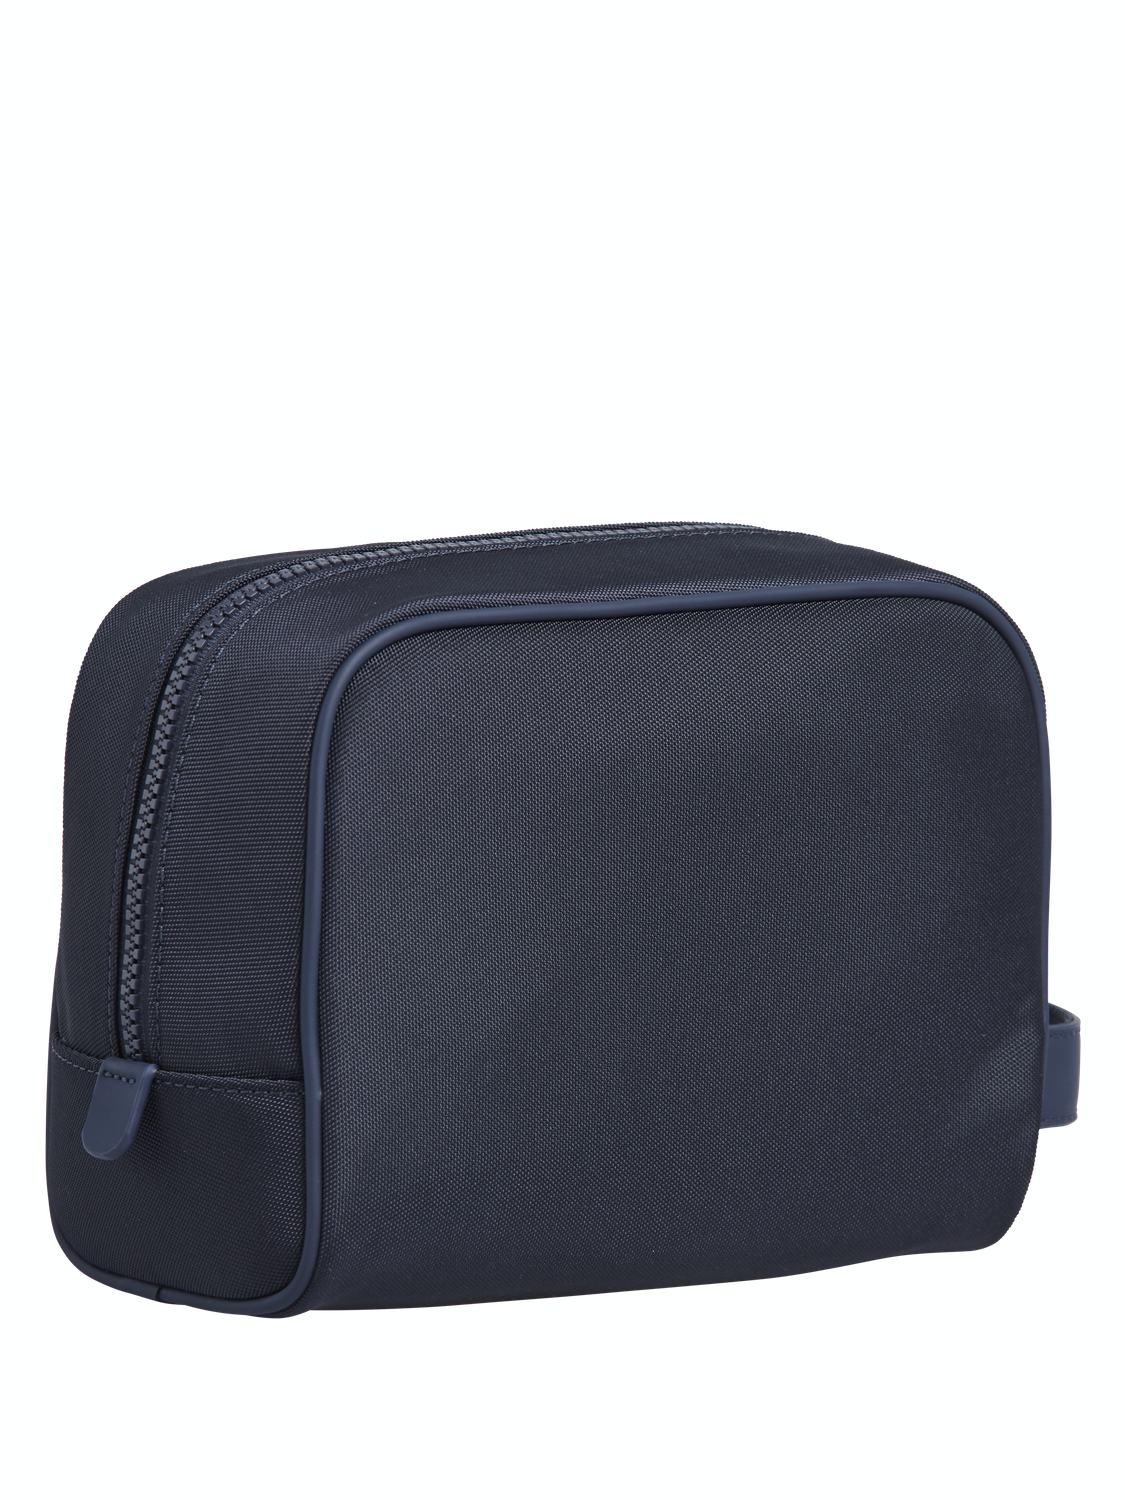 Tommy Hilfiger washbag navy | GATE 36 Hobro